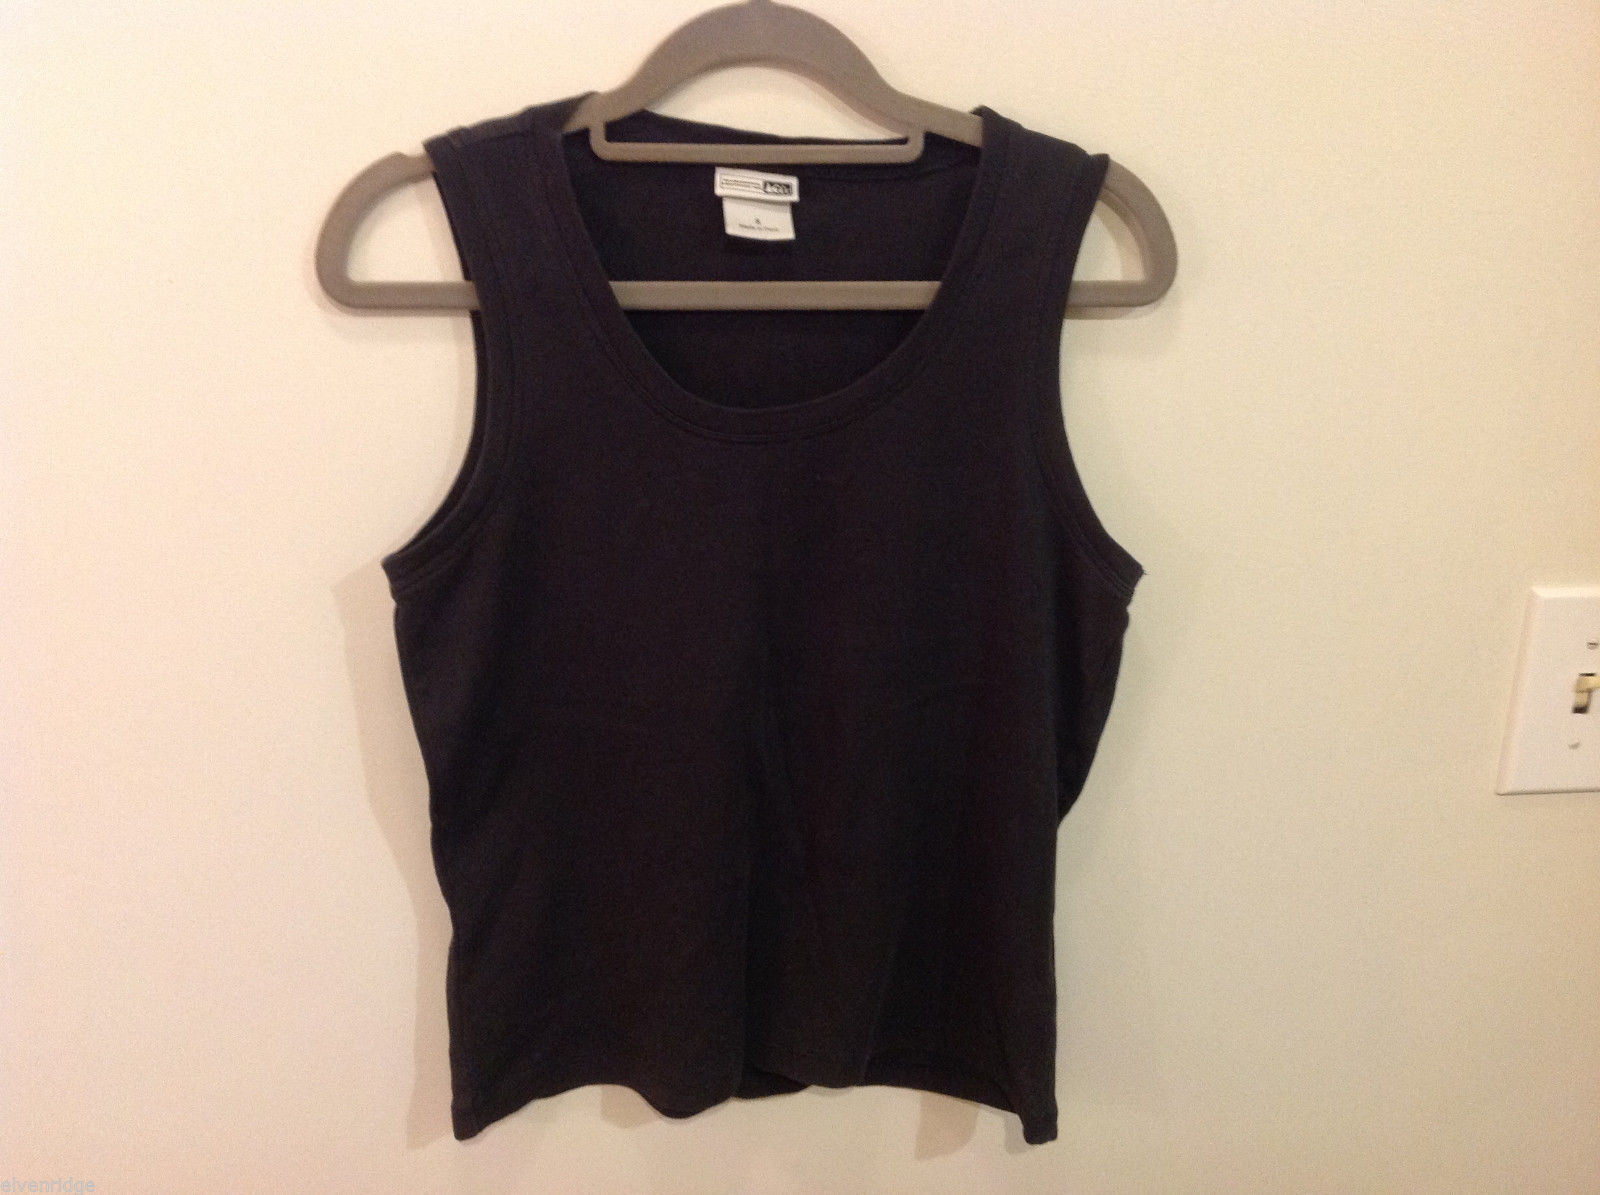 REI Womens Sleeveless Black Stretchable Cotton Tank Top Blouse, Size S